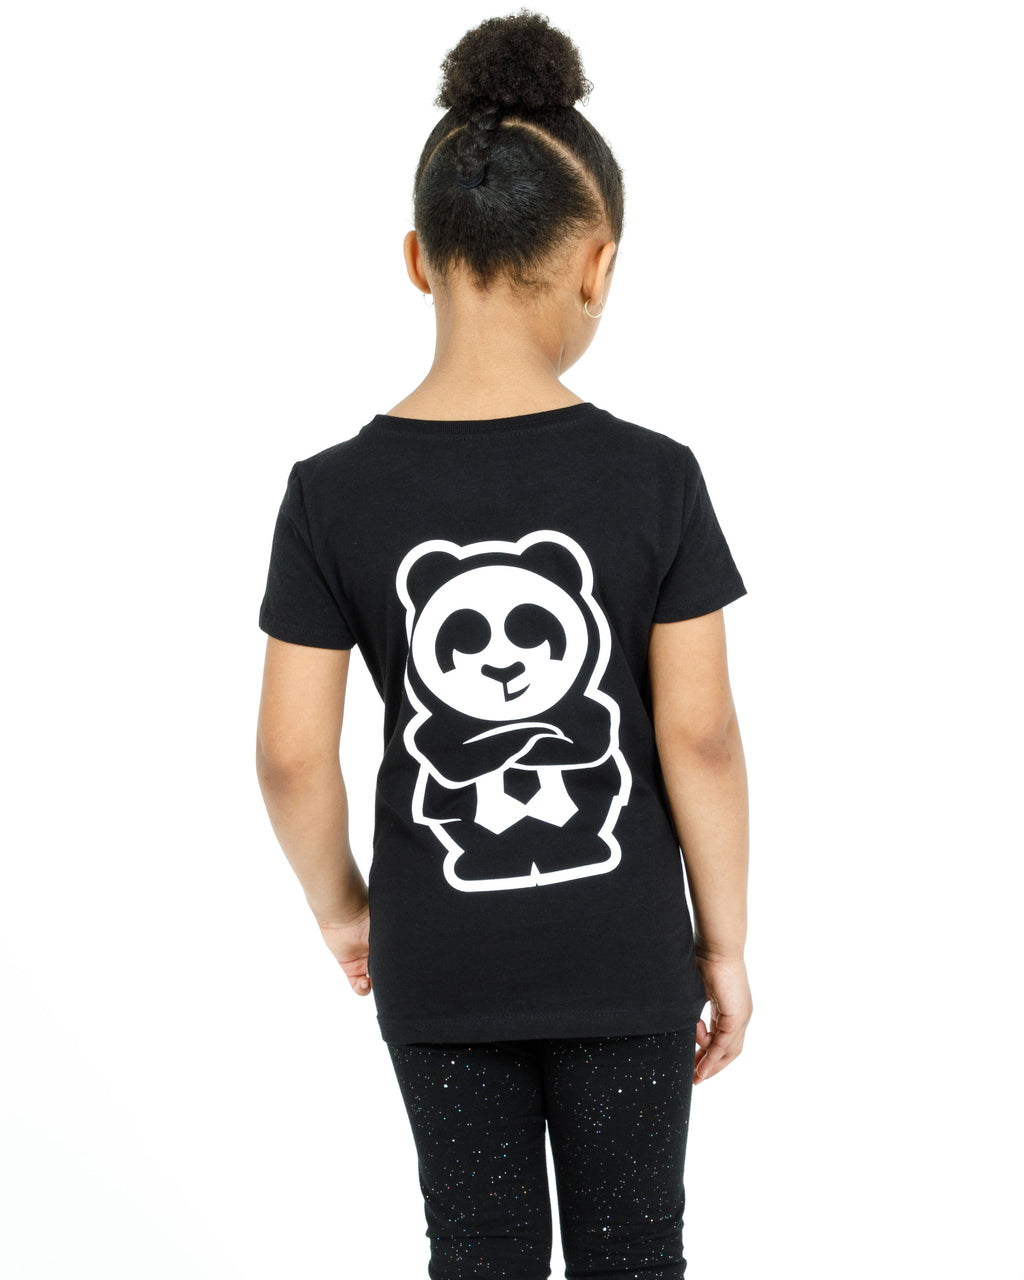 Girl's Giant Panda Fam Tee (Black)